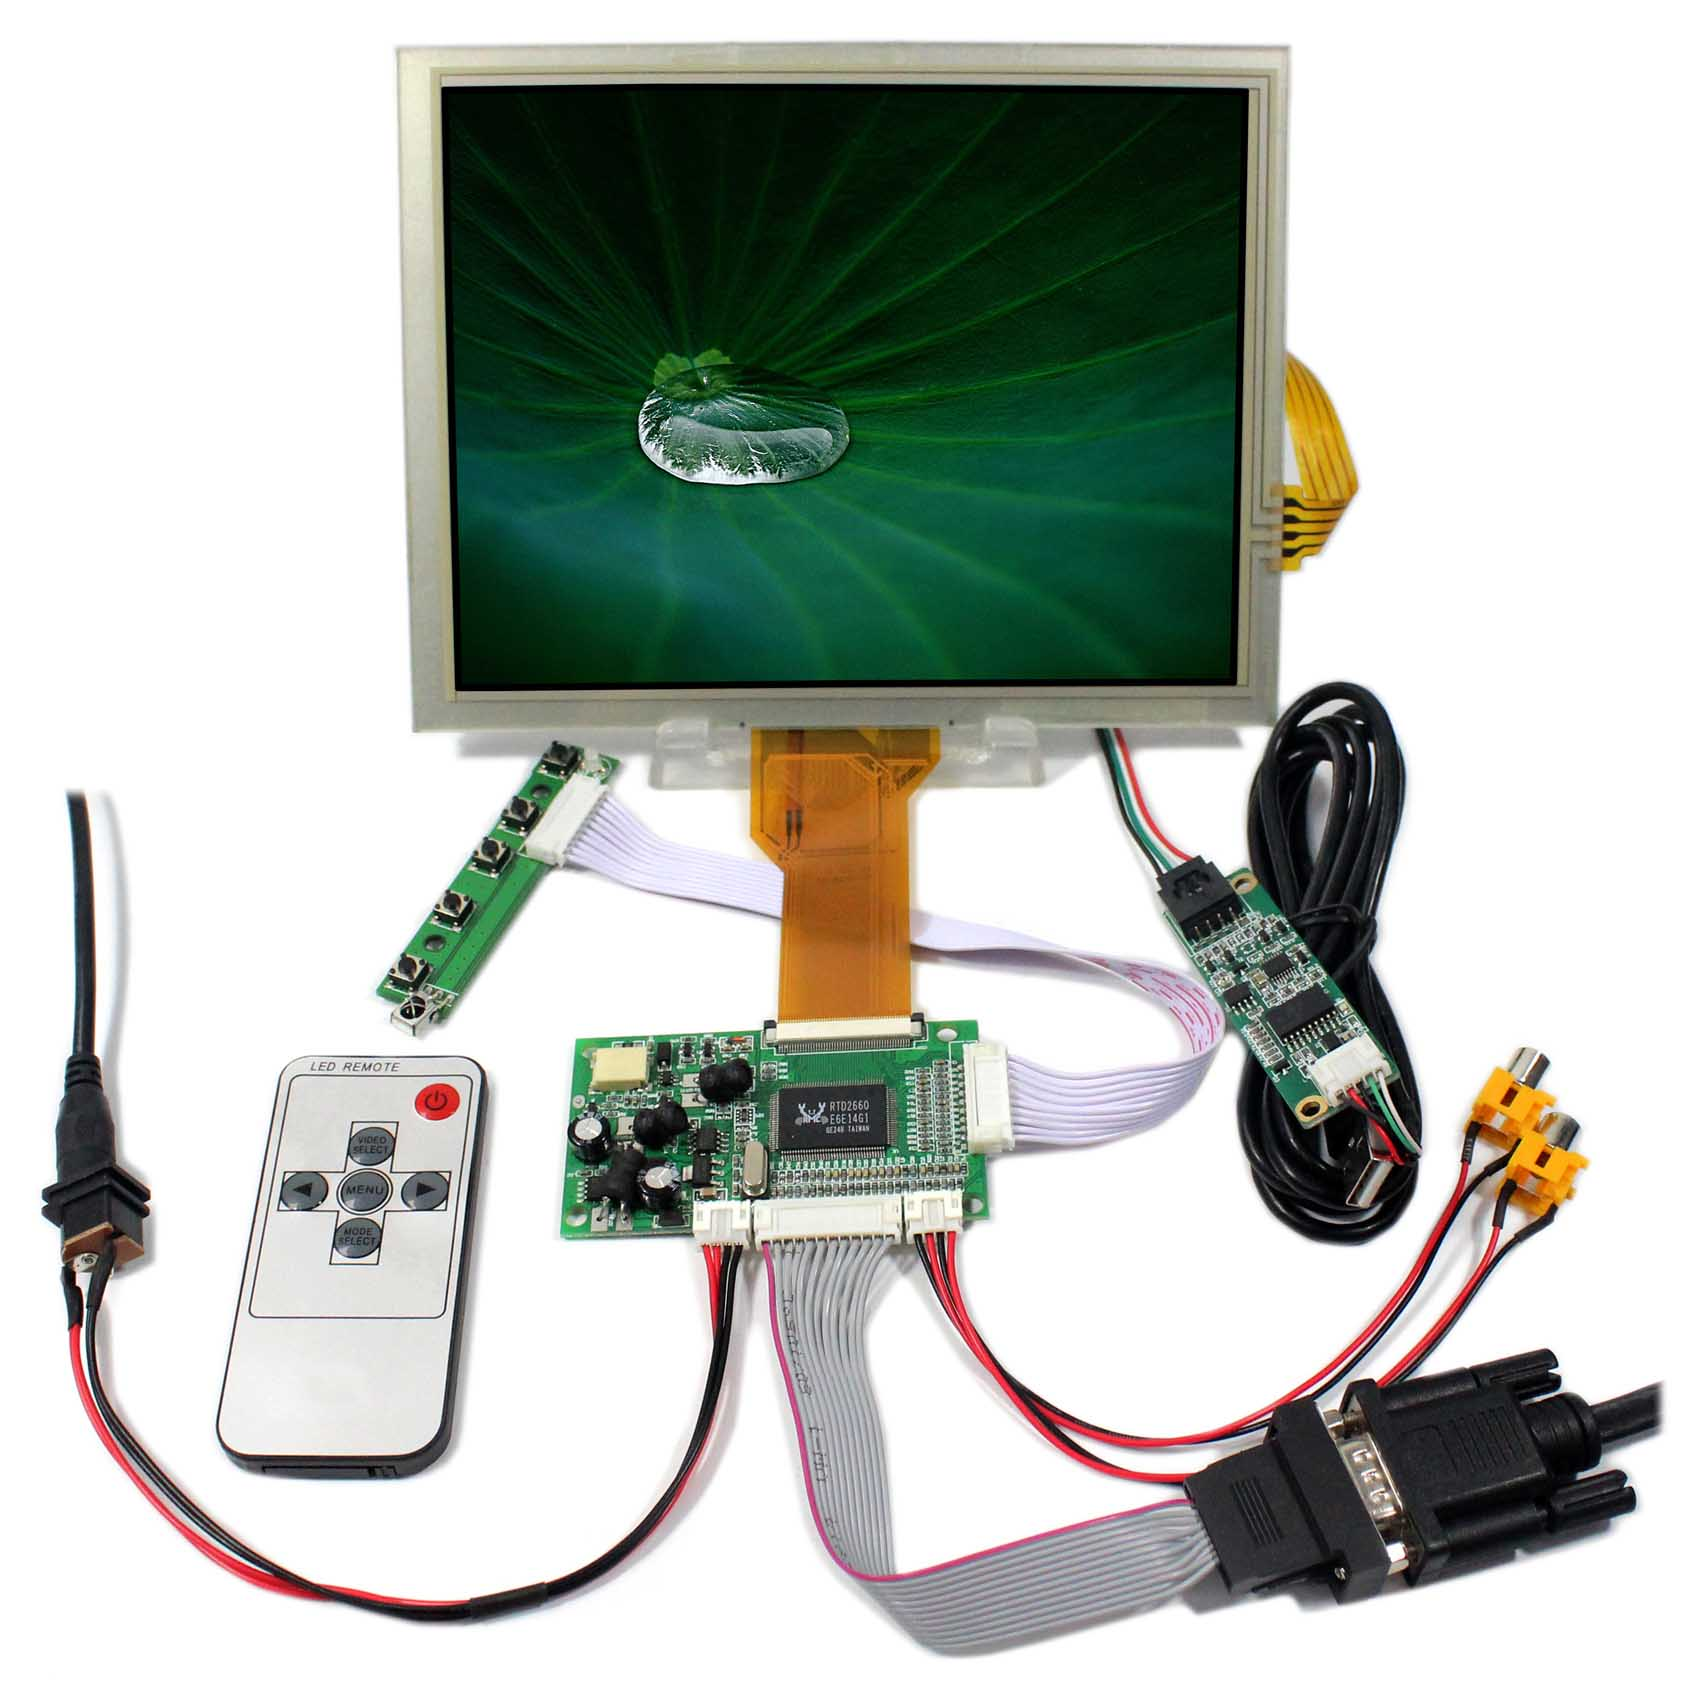 Touch Screen Remote Control VGA 2AV LCD Controller Board 8inch LCD Panel VS-TY50-V1 EJ080NA-05B 800x600Touch Screen Remote Control VGA 2AV LCD Controller Board 8inch LCD Panel VS-TY50-V1 EJ080NA-05B 800x600